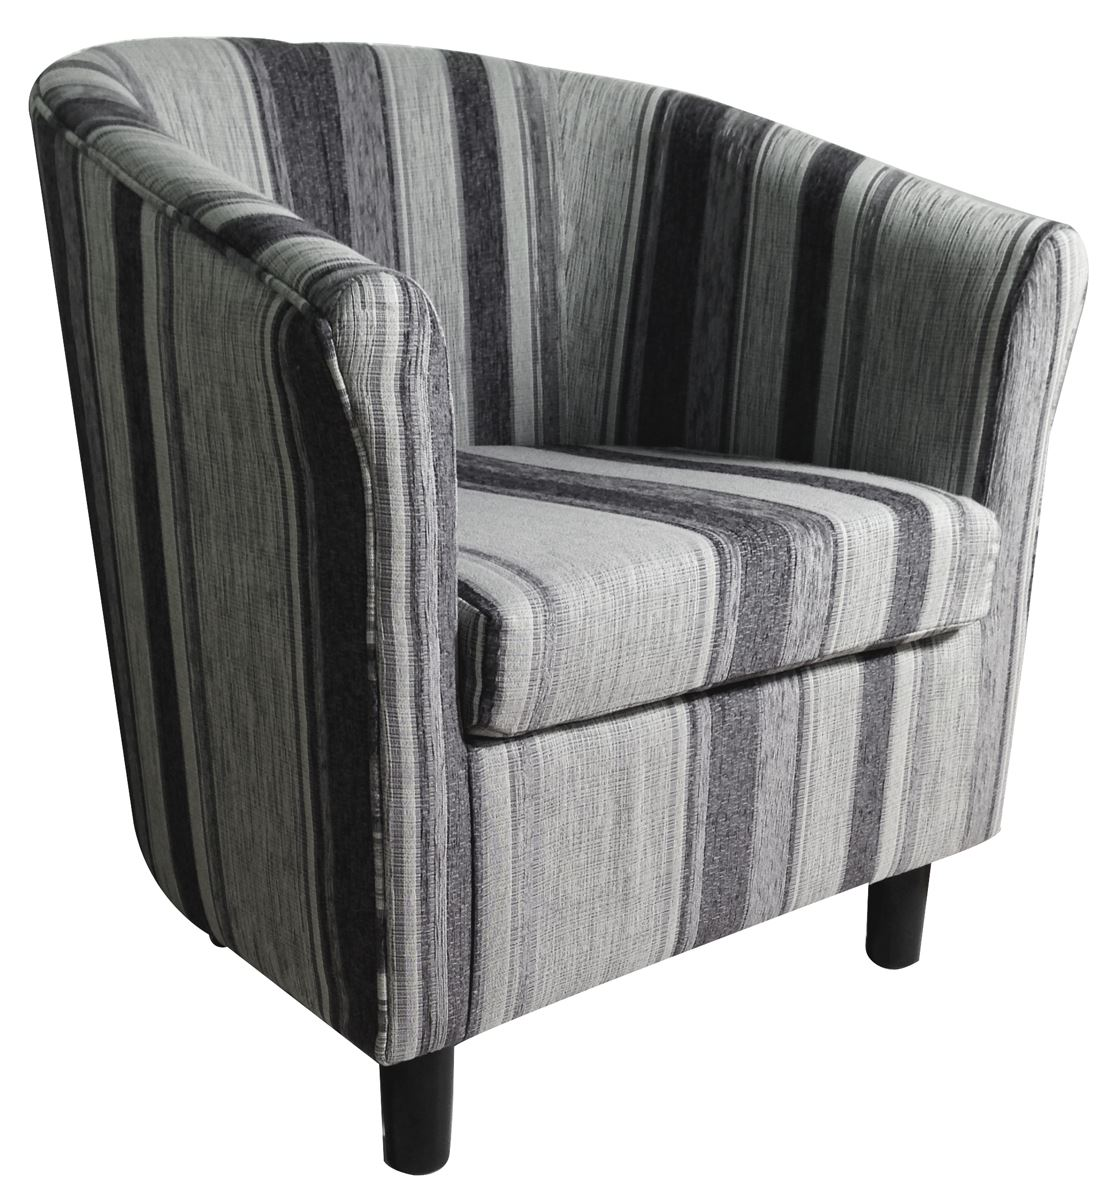 New Grey Striped Tub Chair Pattern Home Conservatory Fabric Design Armchair